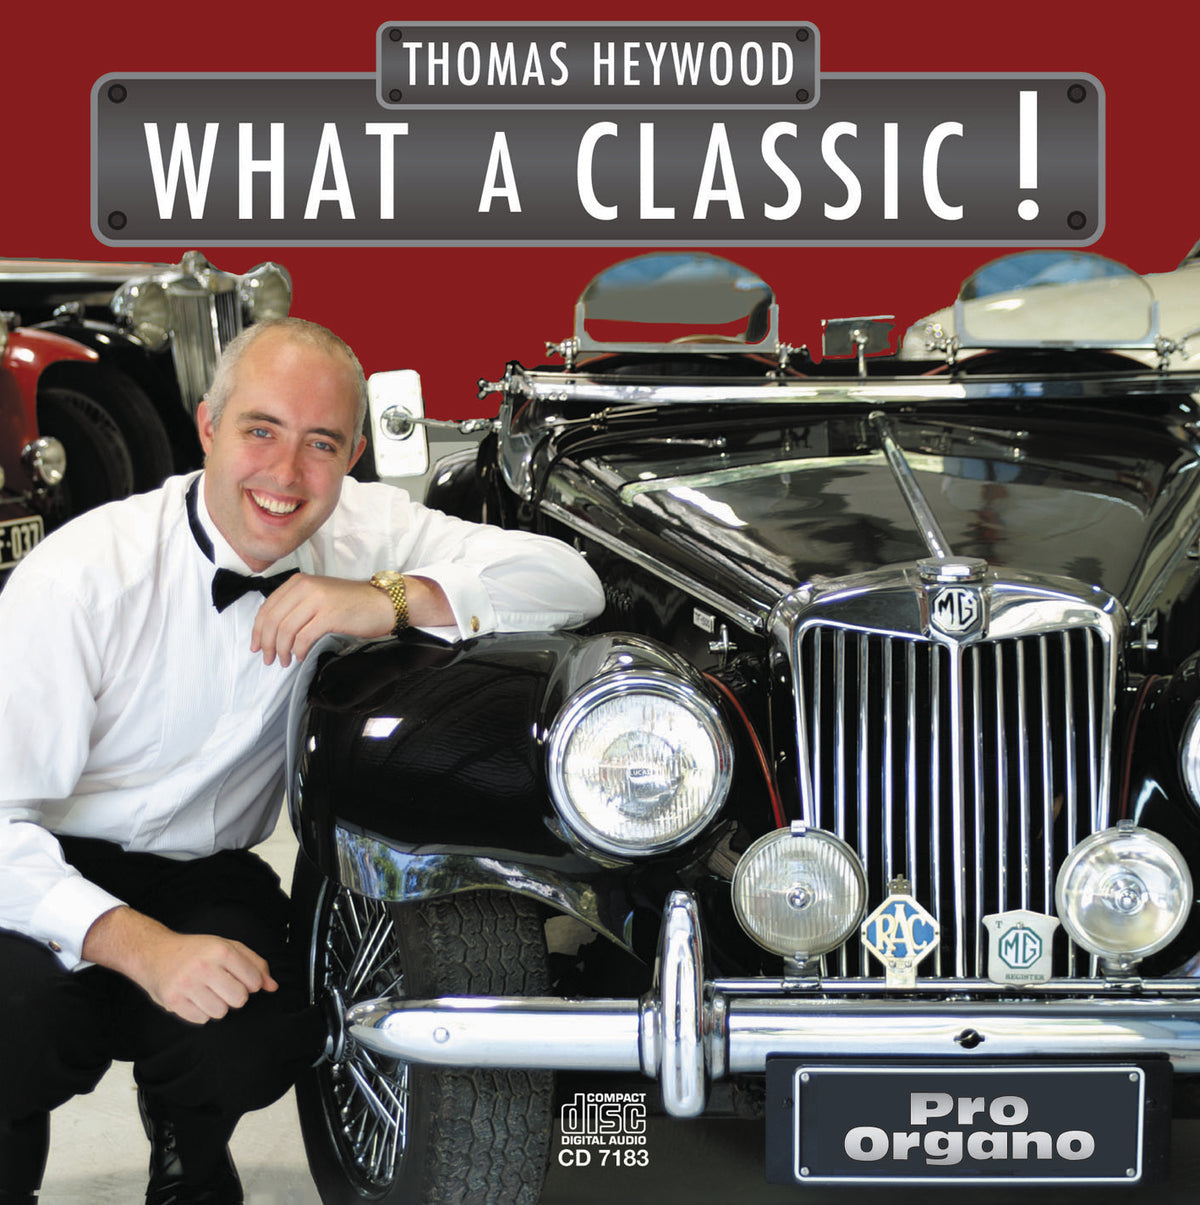 What a Classic! (CD) | Thomas Heywood | Concert Organ International